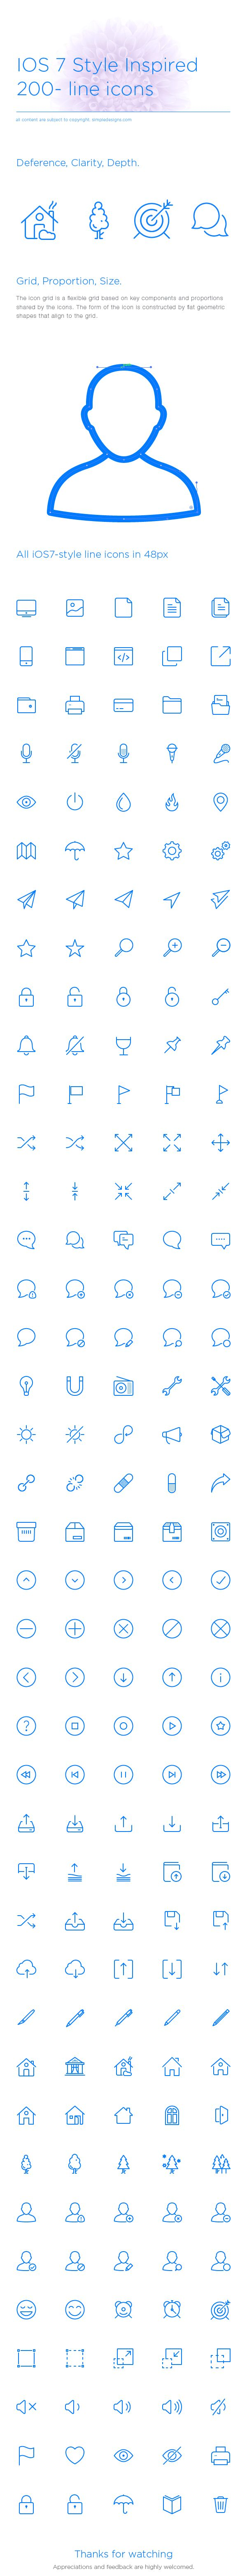 iOS Line icons on Behance